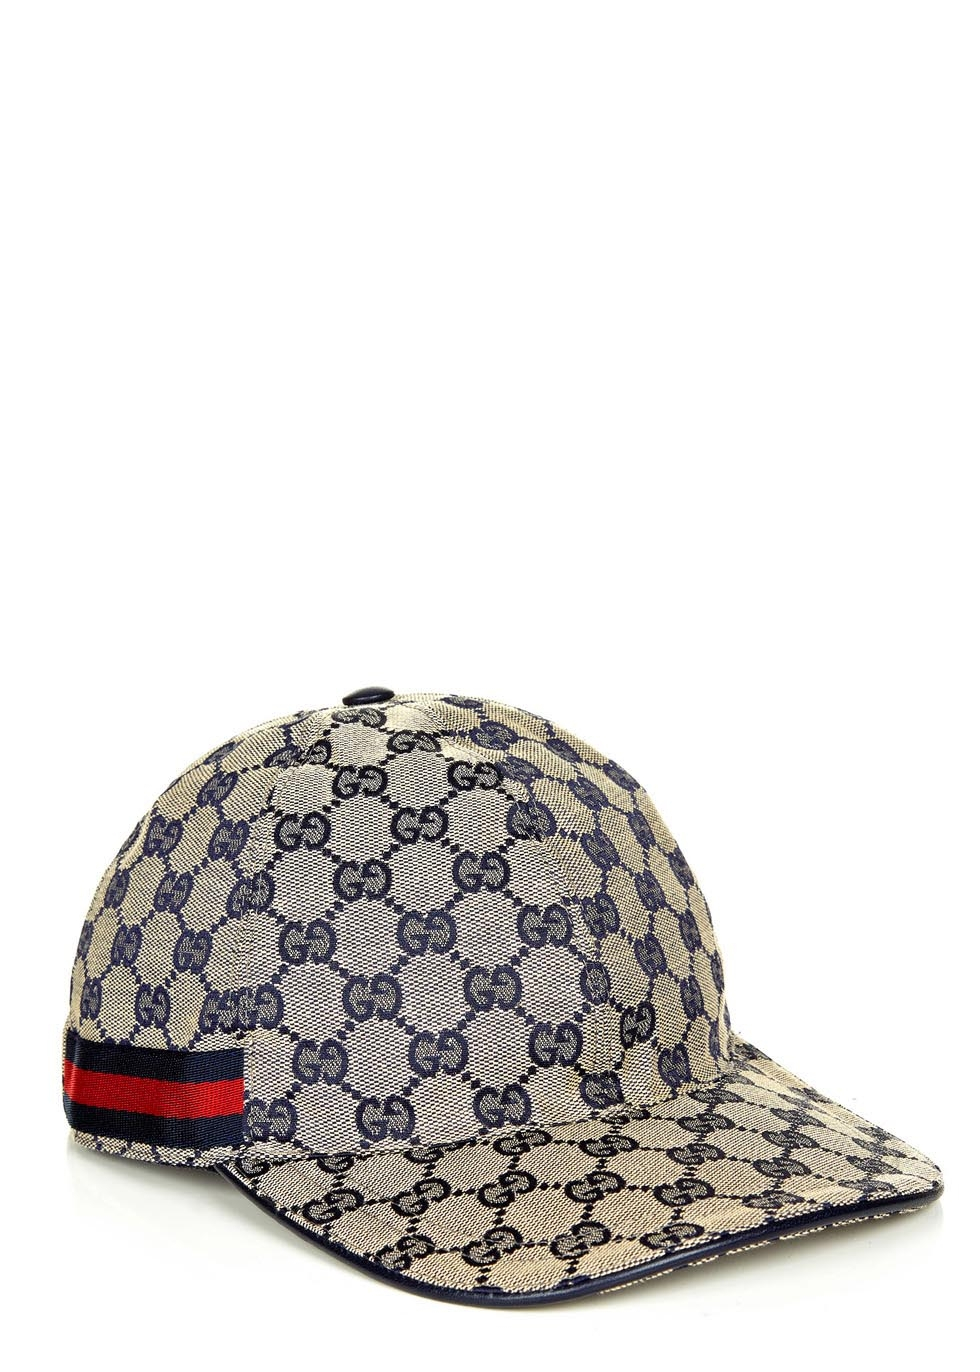 Gucci Gg Navy Canvas Cap In Gray For Men Lyst